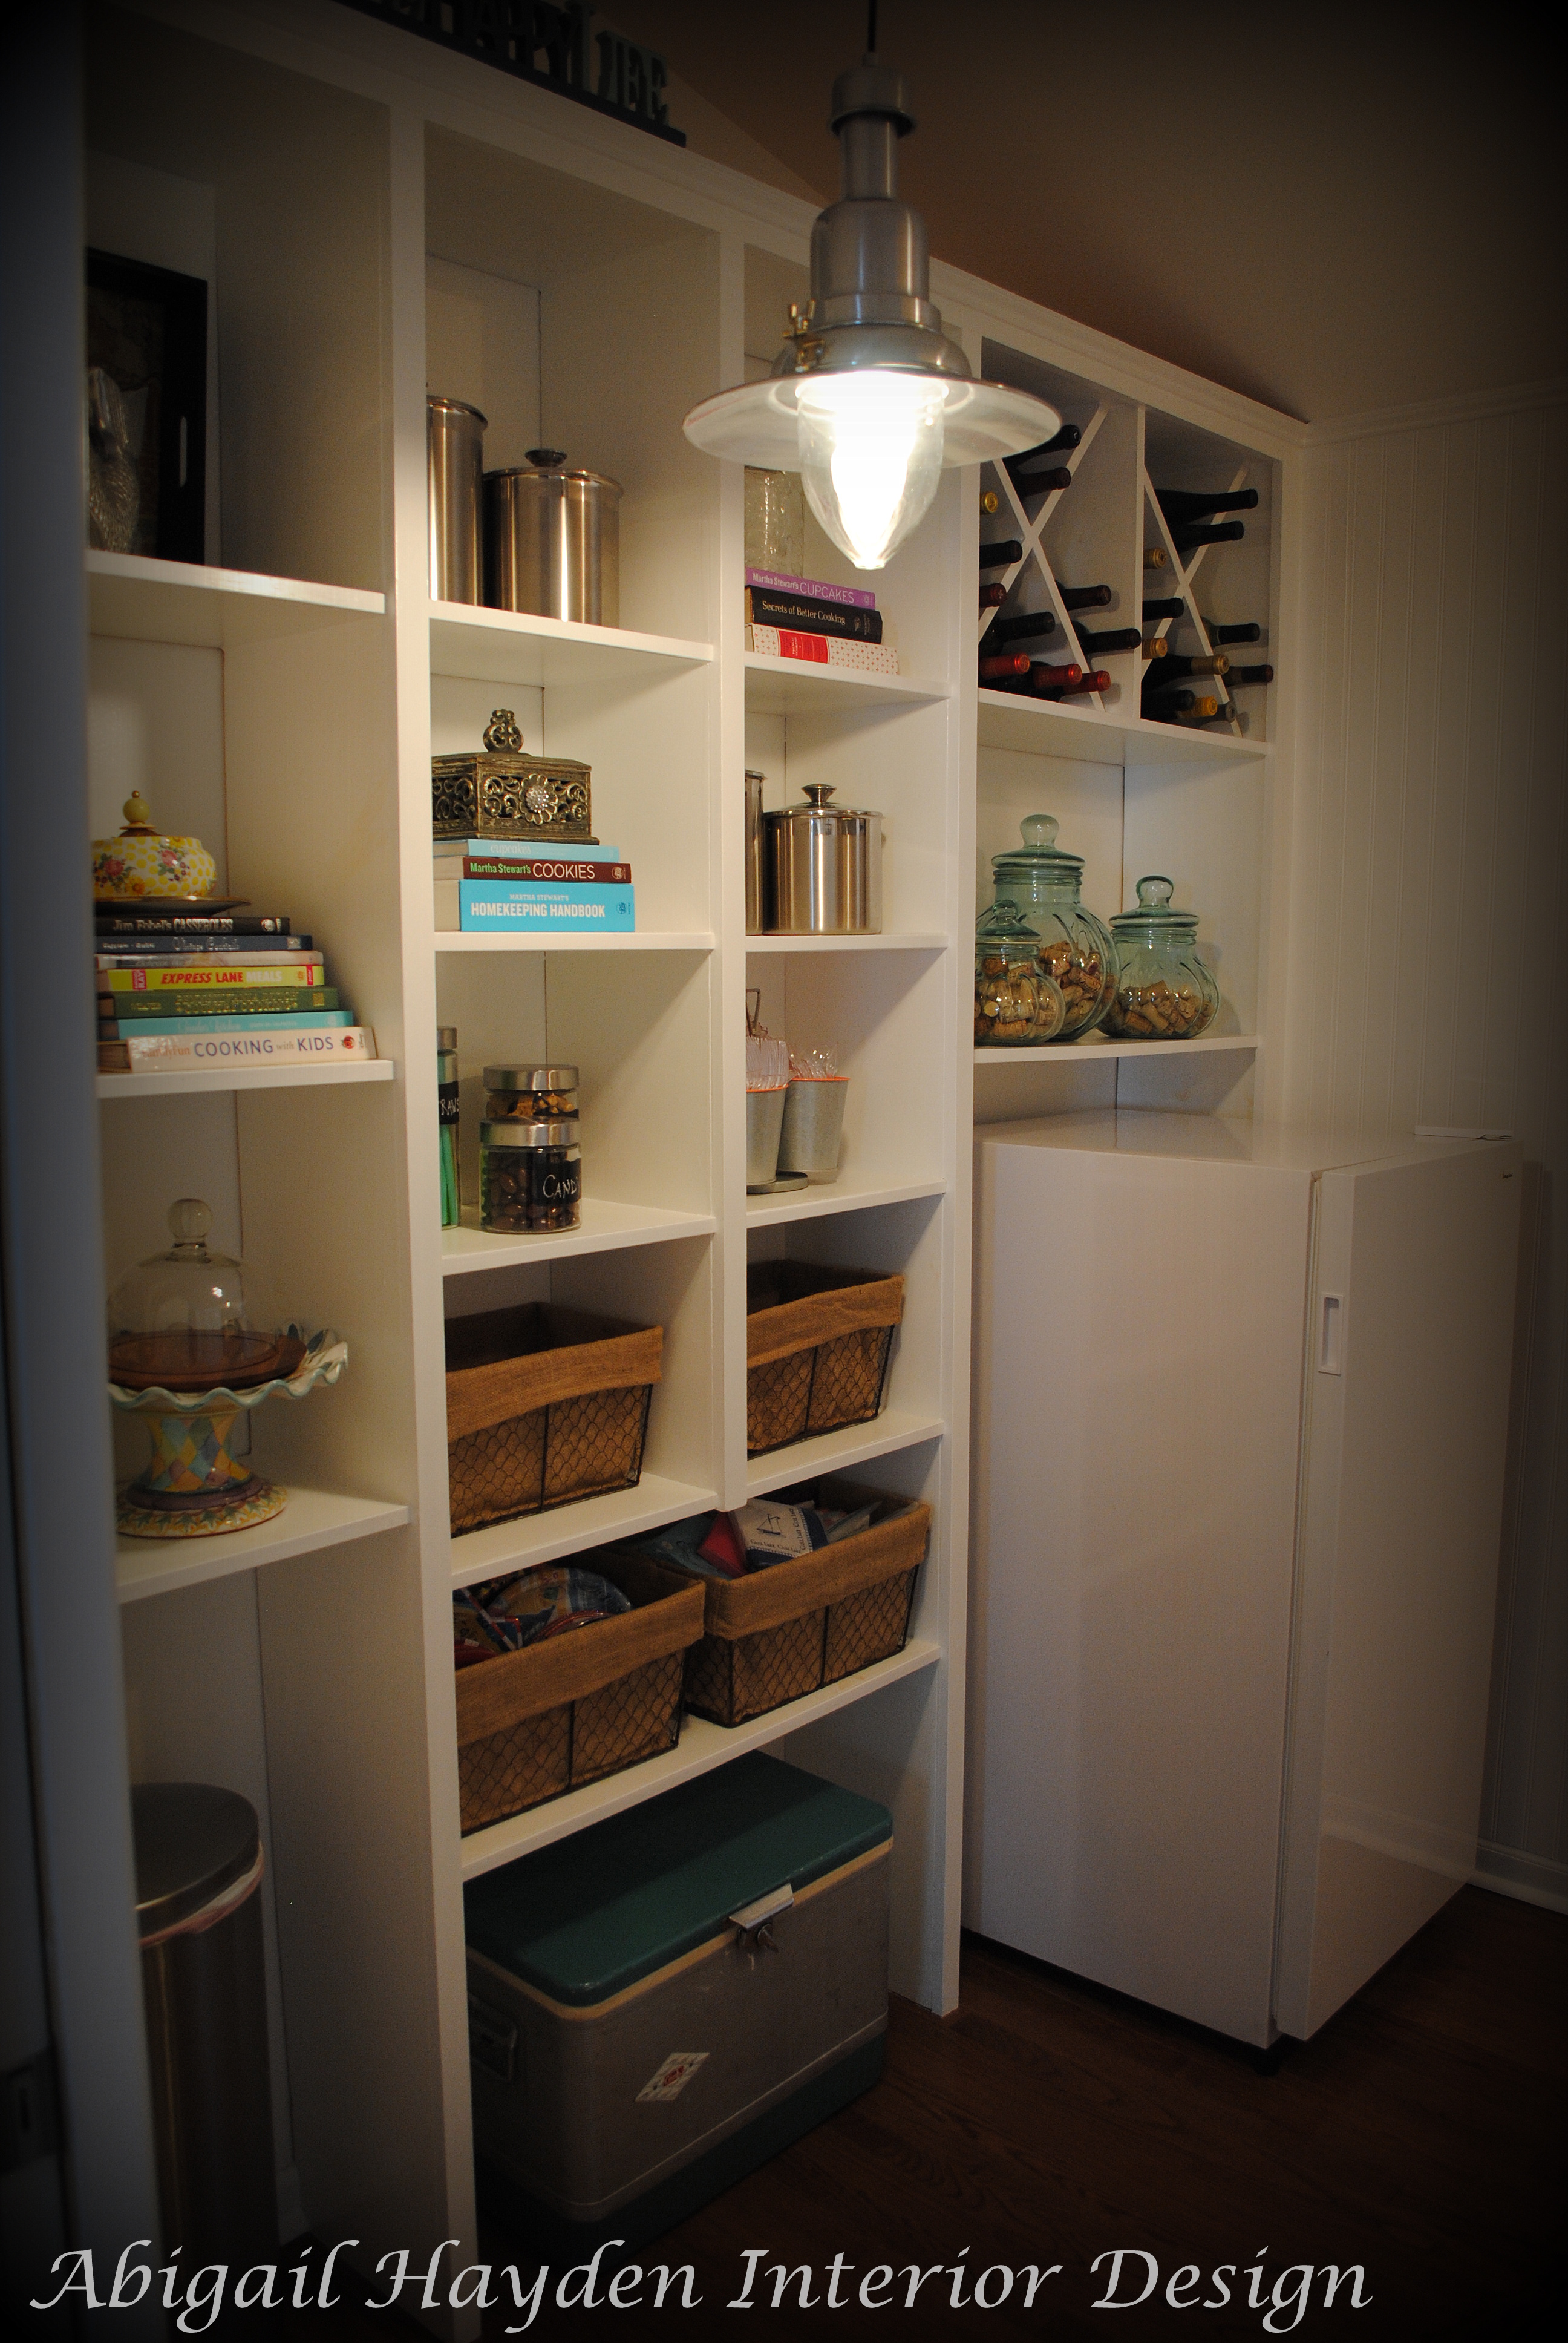 every lake house needs a butler s pantry right. Black Bedroom Furniture Sets. Home Design Ideas